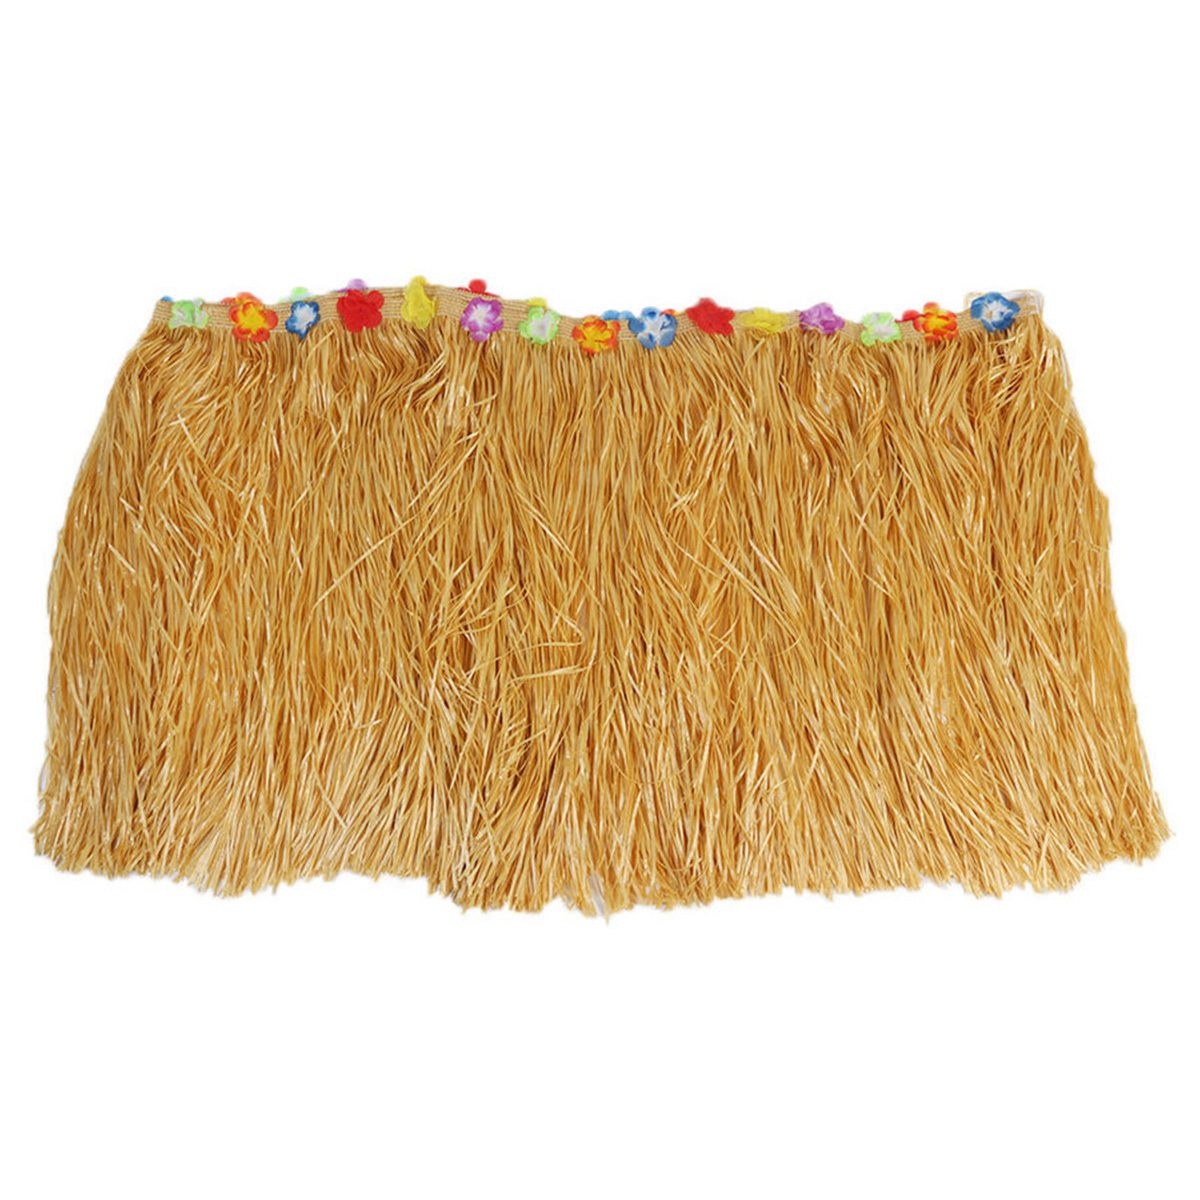 Table Skirt Hawaiian Luau Flower Grass Garden Wedding Party Beach Decoration